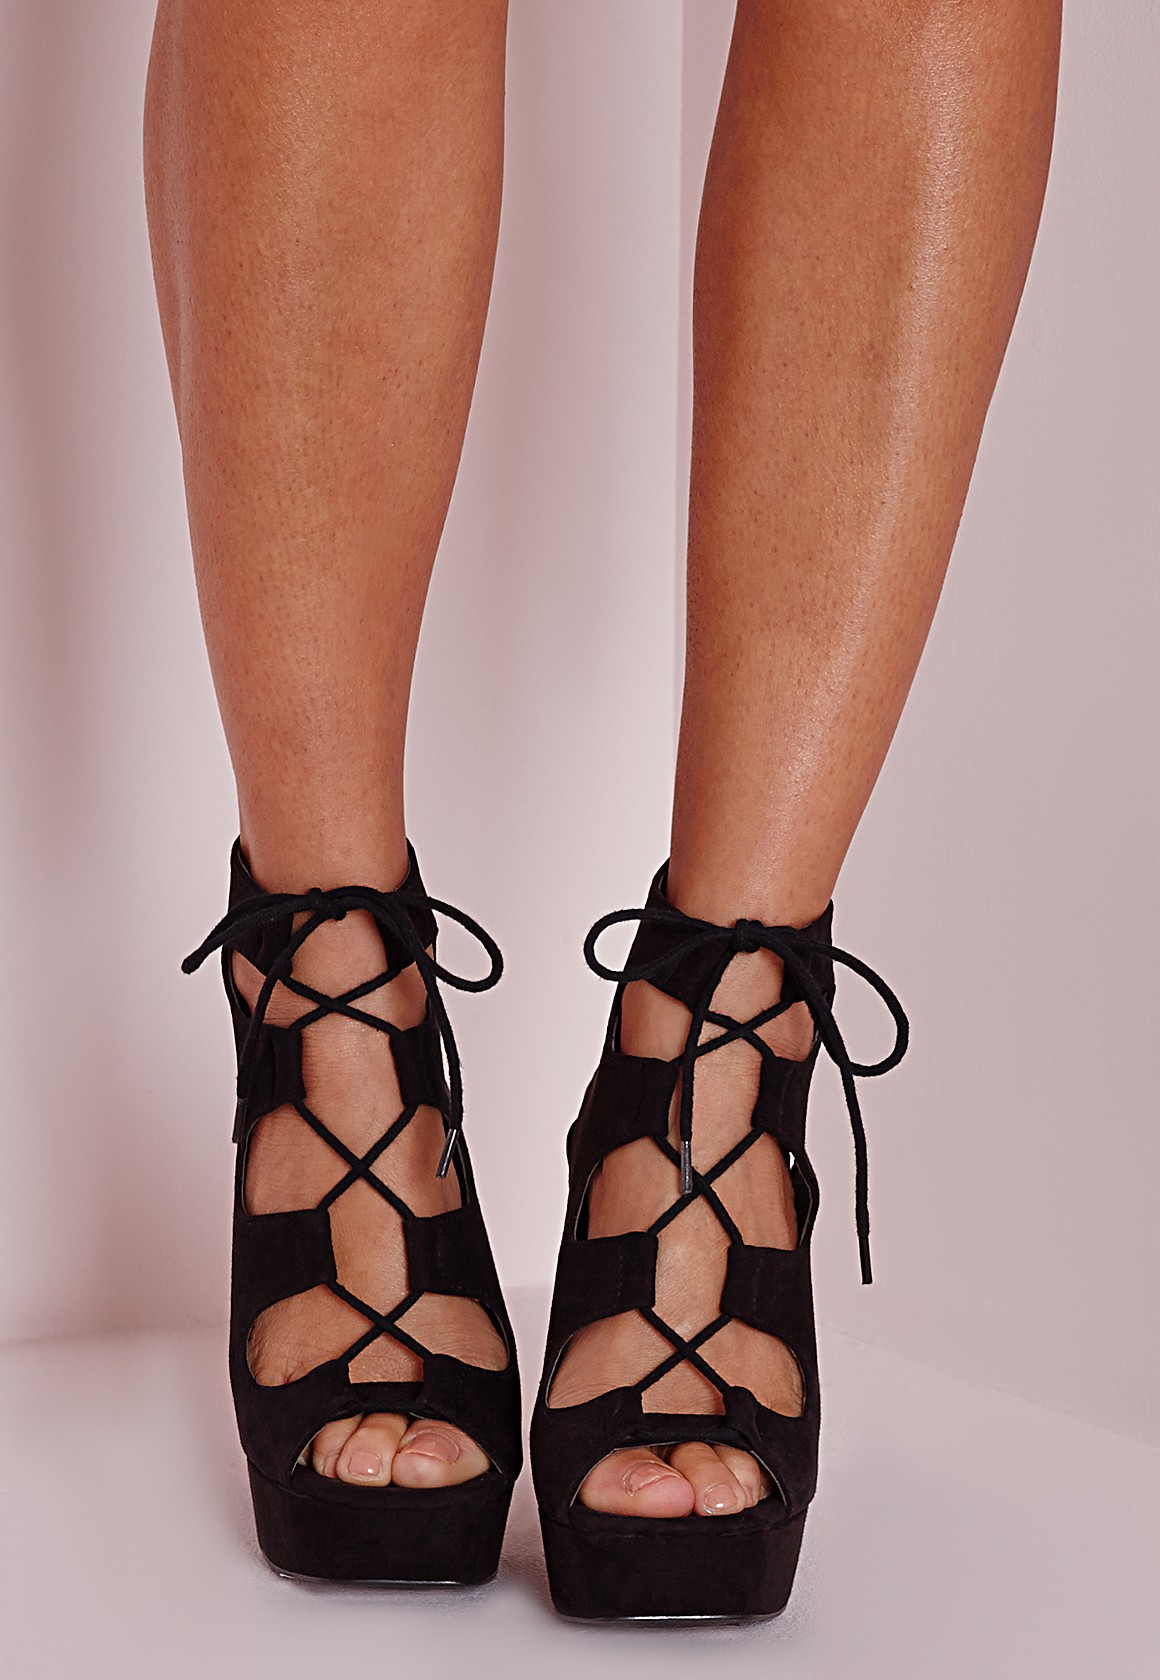 4e4f2d711caa Lyst - Missguided Lace Up 70 s Platform Sandals Black in Black